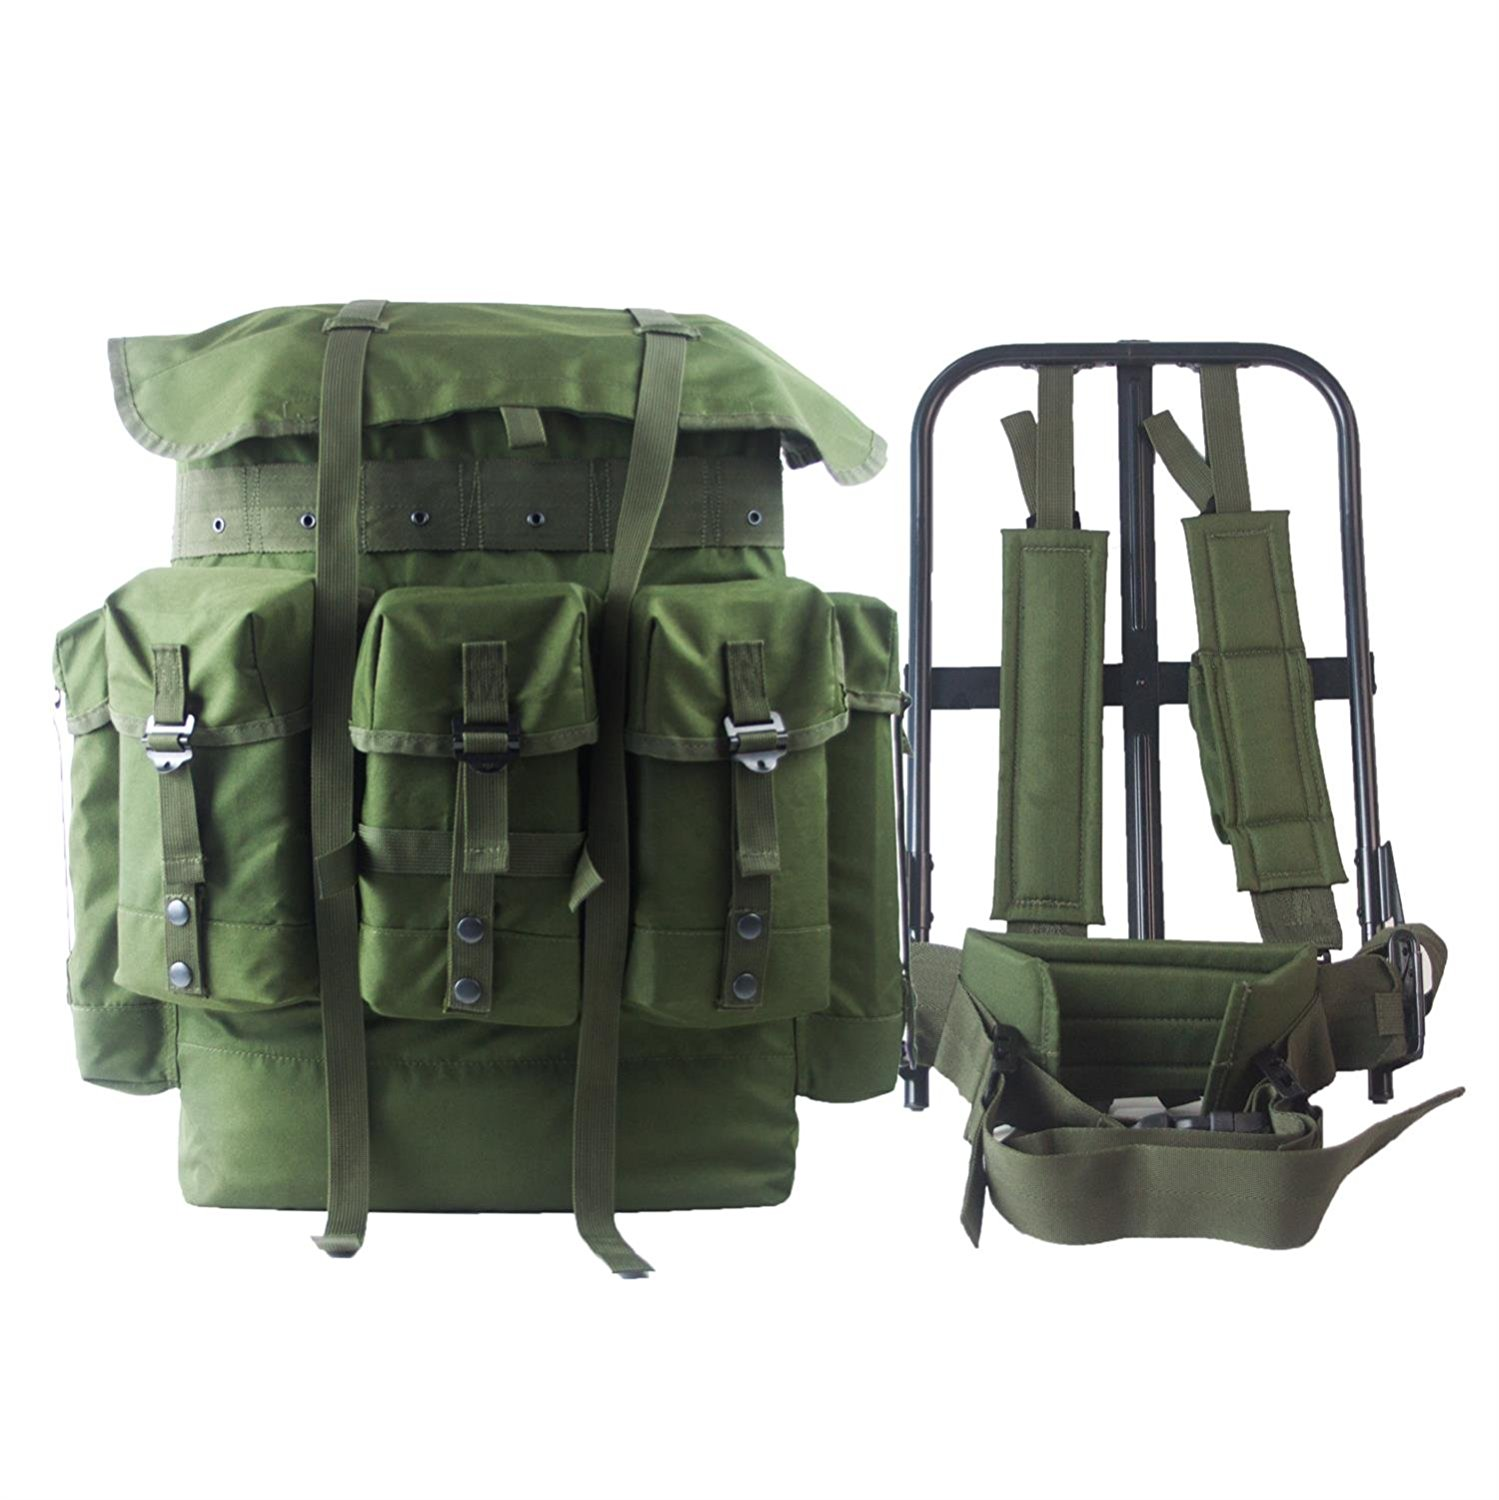 d366f6014d89 Get Quotations · G.I. Military Surplus Rucksack Alice Pack